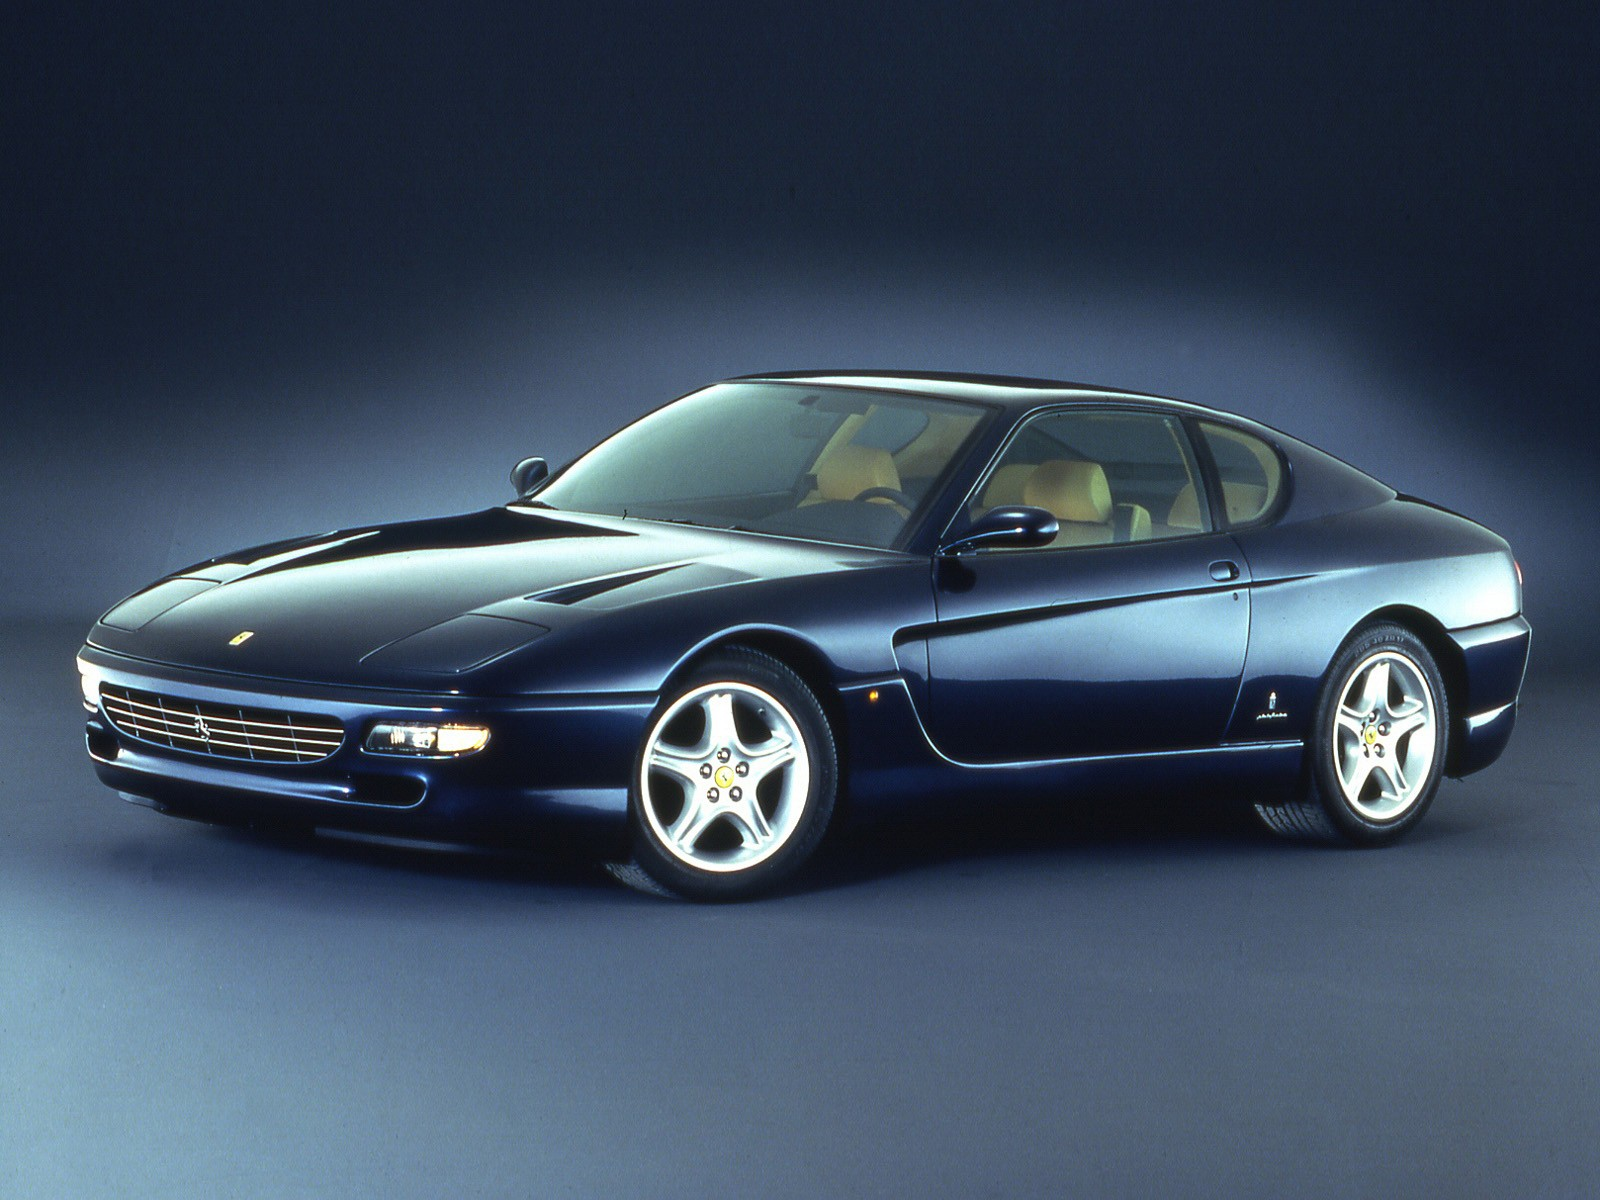 ferrari 456 gt specs 1992 1993 1994 1995 1996 1997. Black Bedroom Furniture Sets. Home Design Ideas